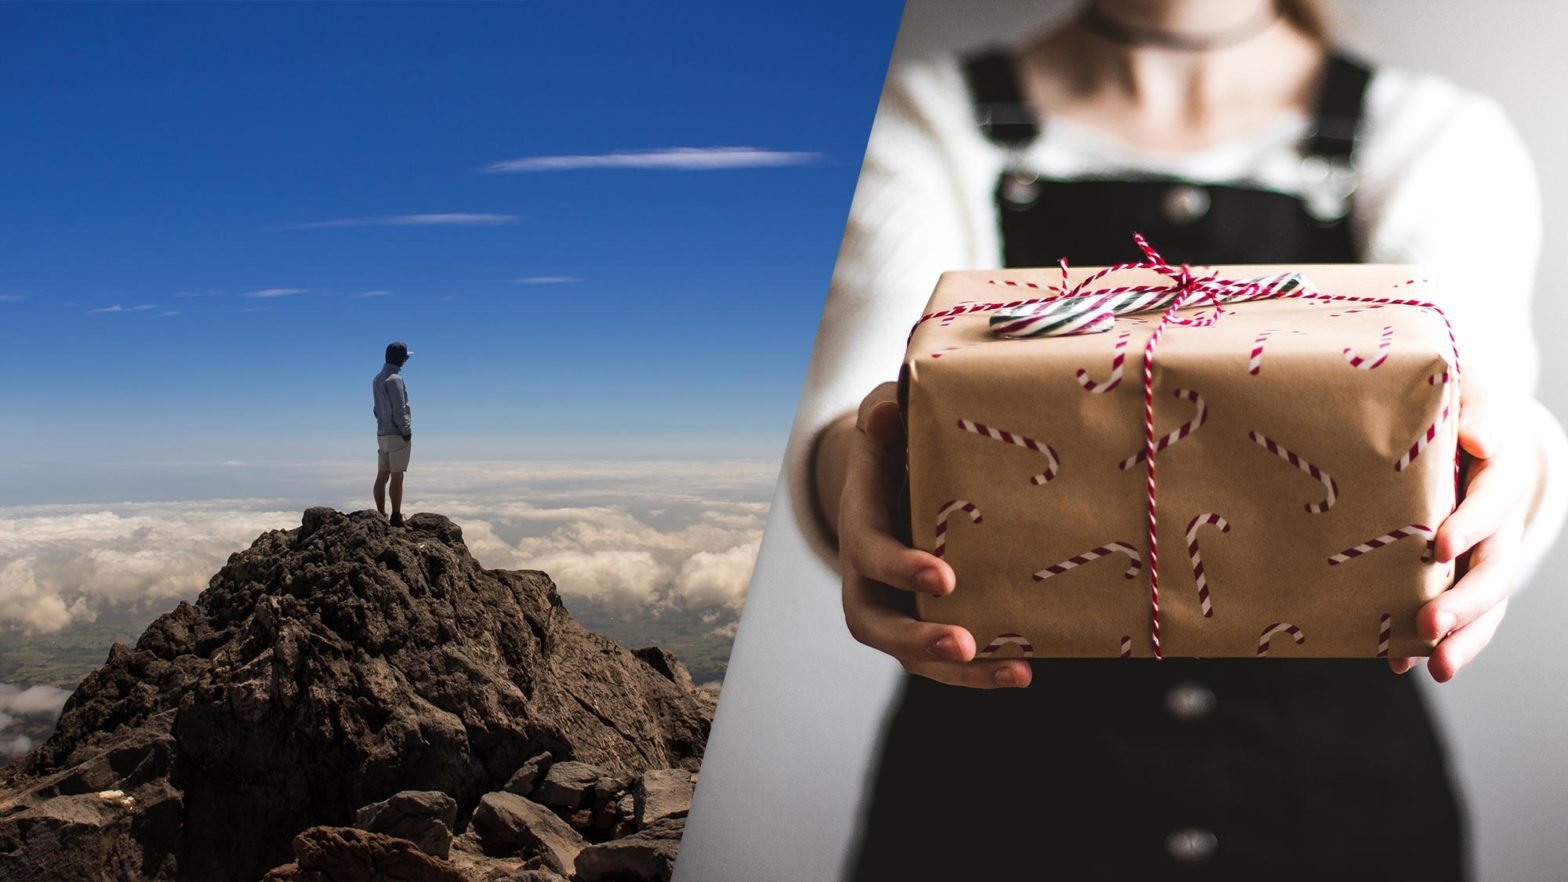 Experiences Have Overtaken Products As Gifts